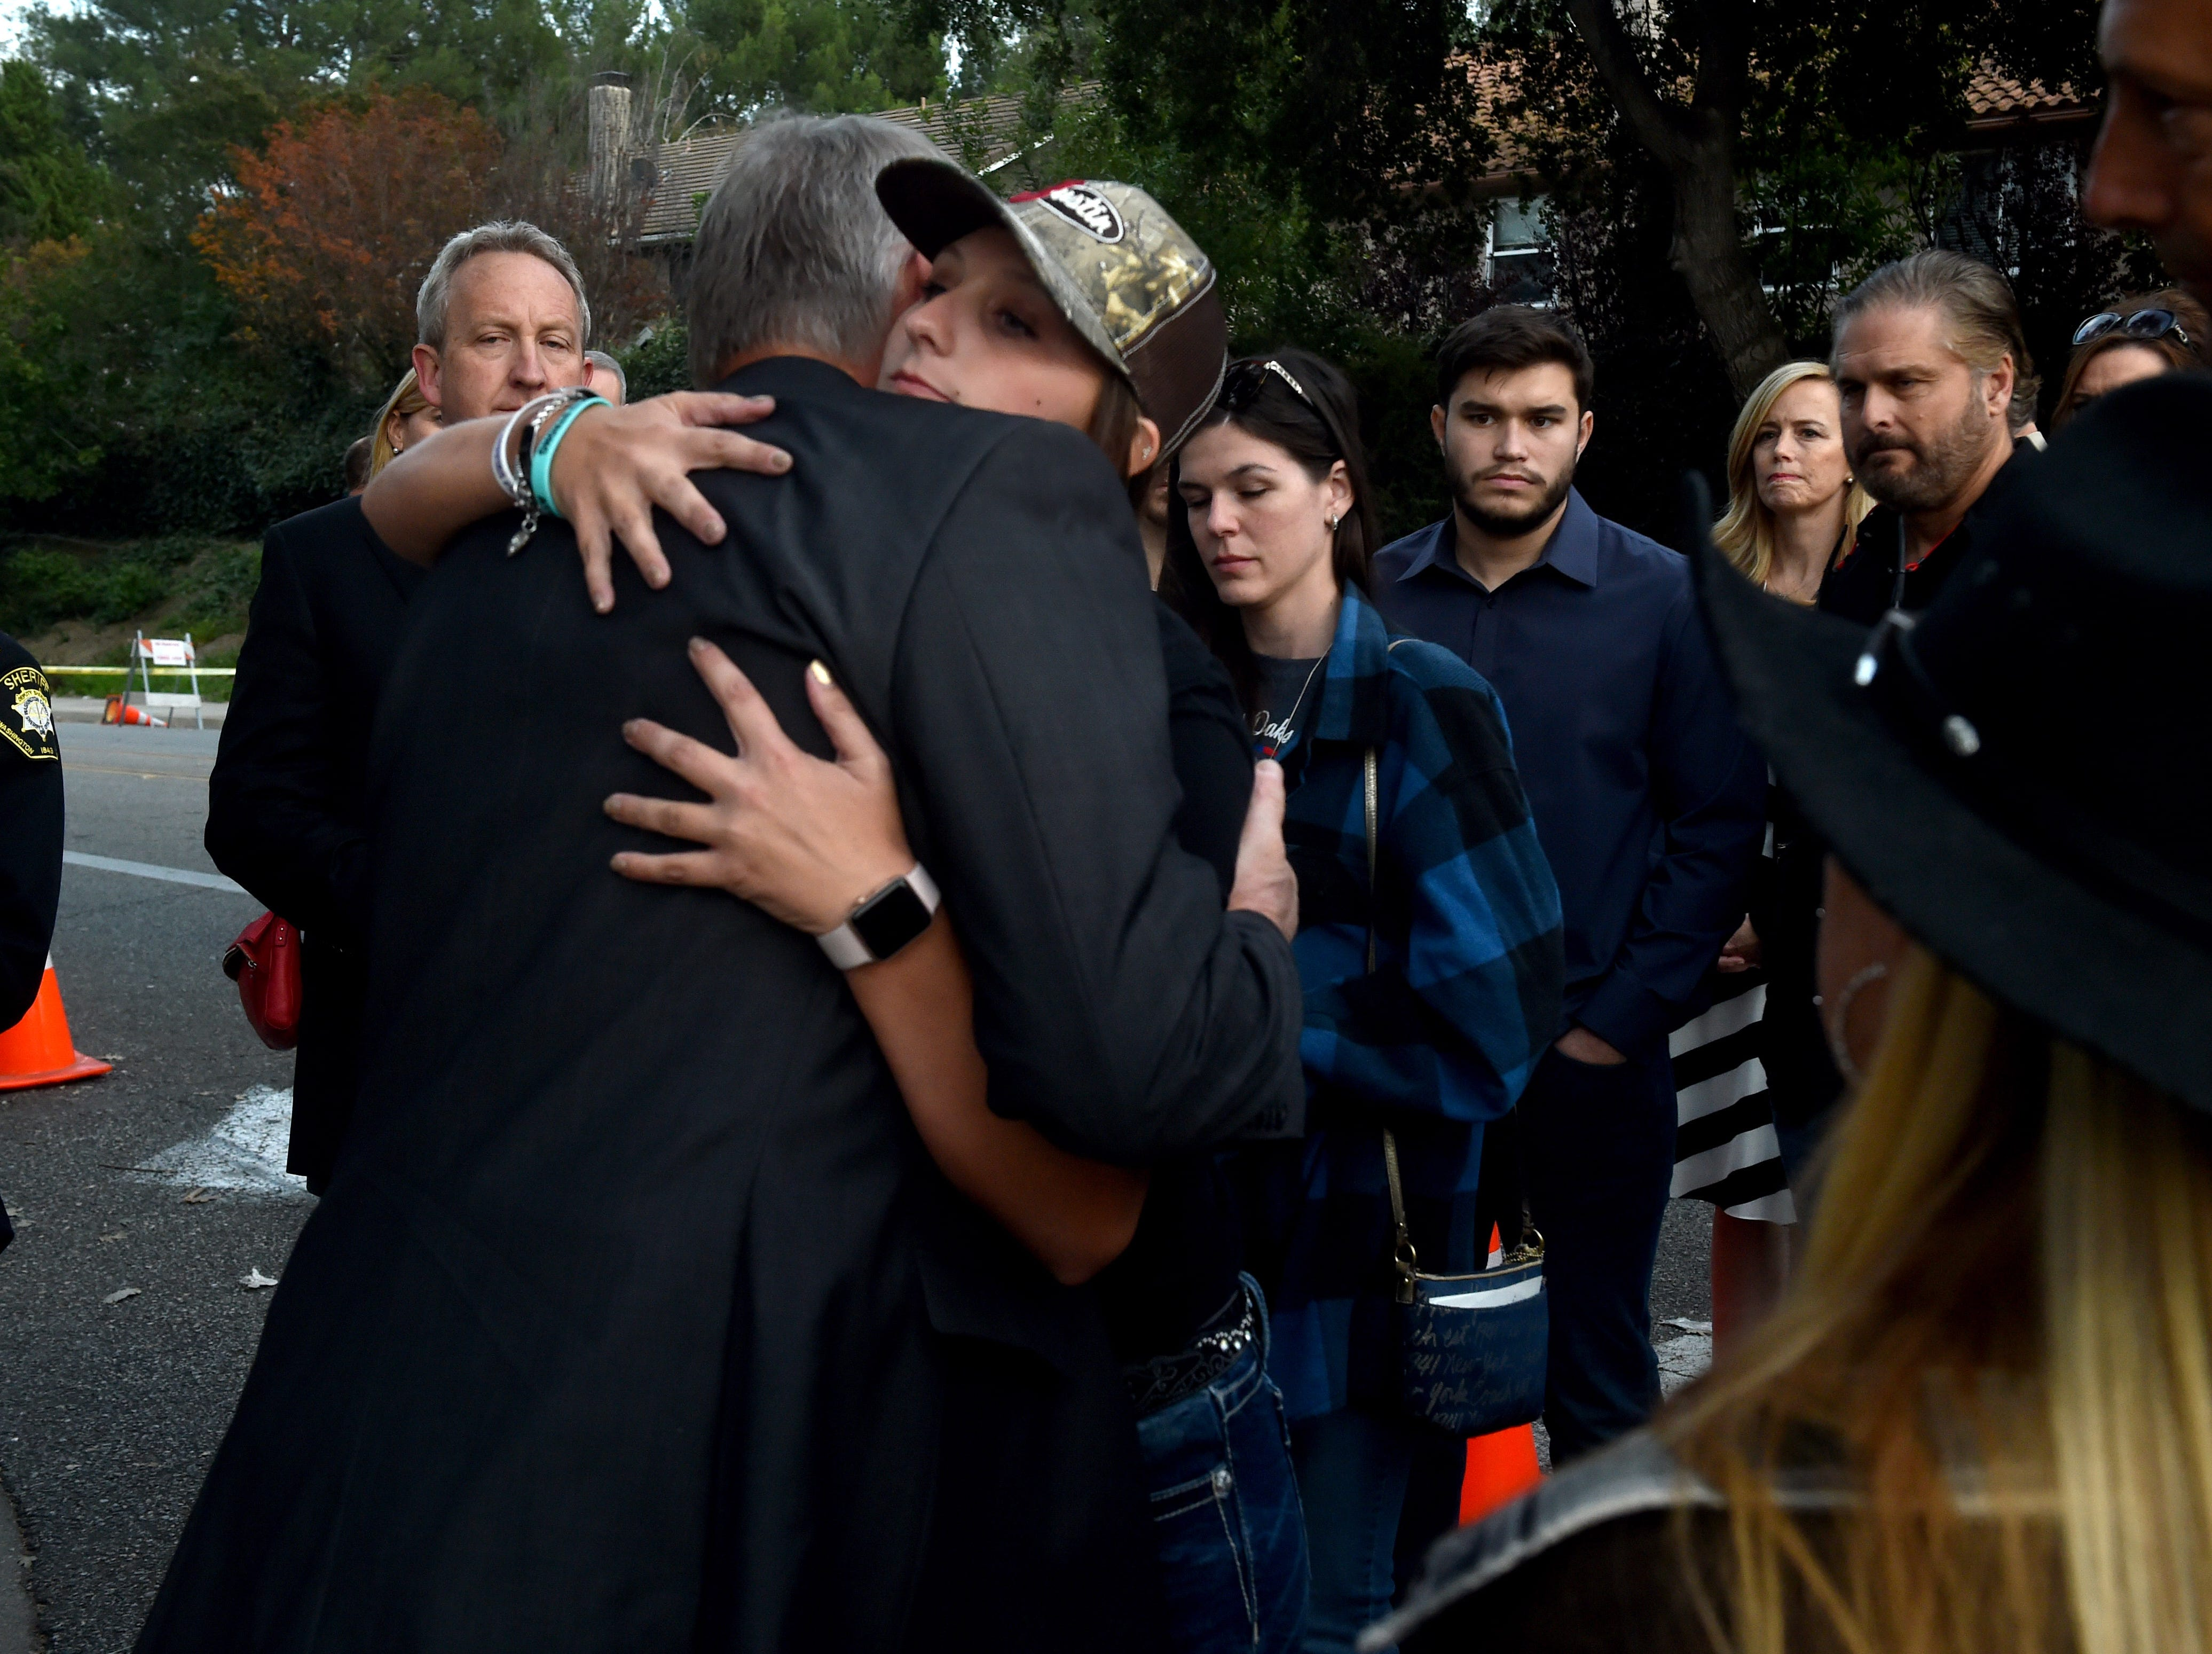 Victoria Rose Mee, whose brother Justin Meek was among those who died in the Nov. 7 shooting at the Borderline Bar & Grill in Thousand Oaks, shares a hug Thursday with U.S. Interior Secretary Ryan Zinke at a memorial wall near the bar.